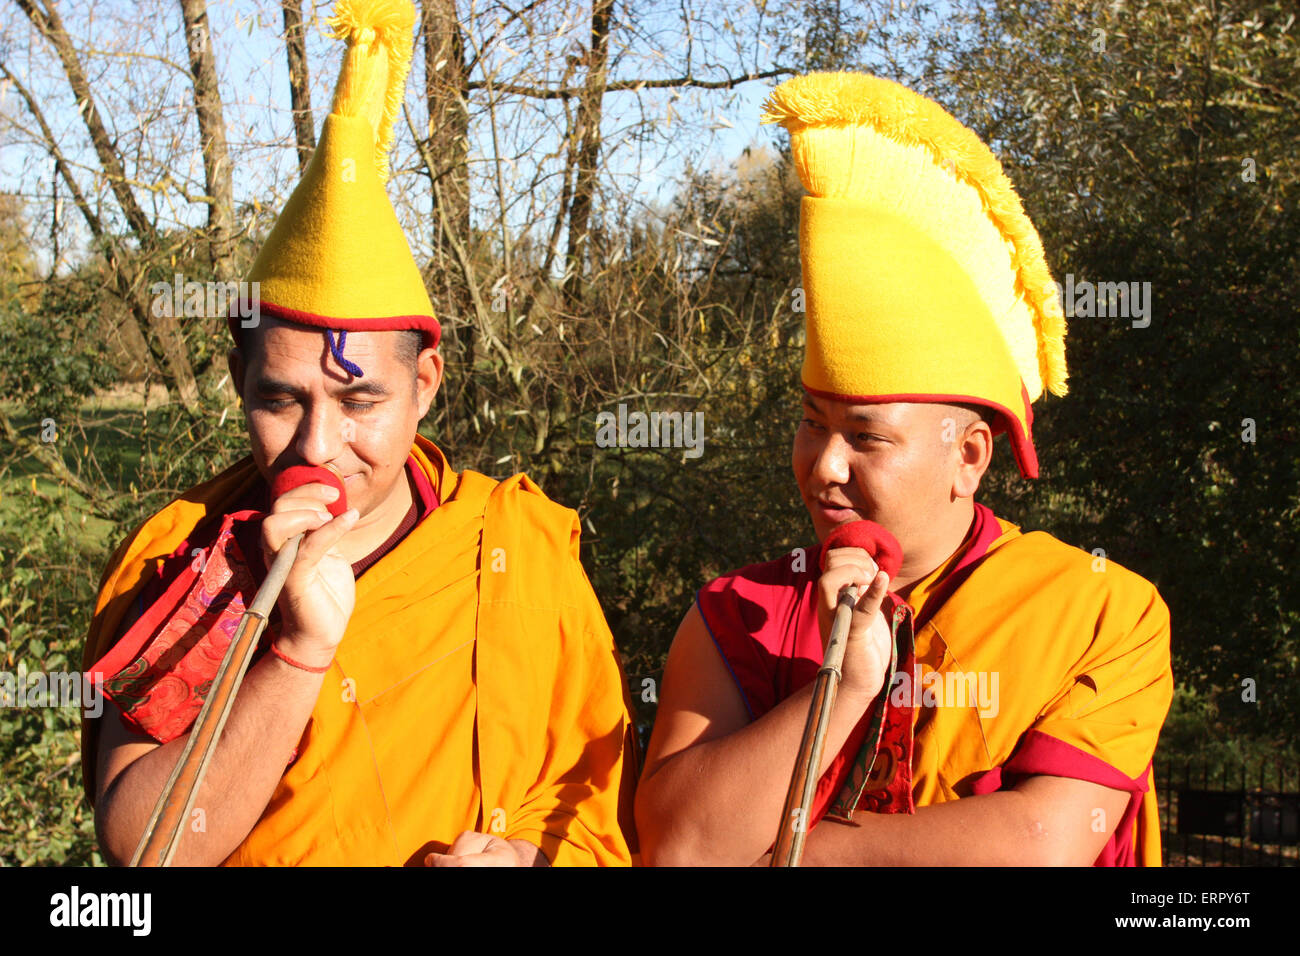 Tibetan Monks in residence at the Pitt Rivers museum in Oxford, during the closing ceremony and procession. - Stock Image